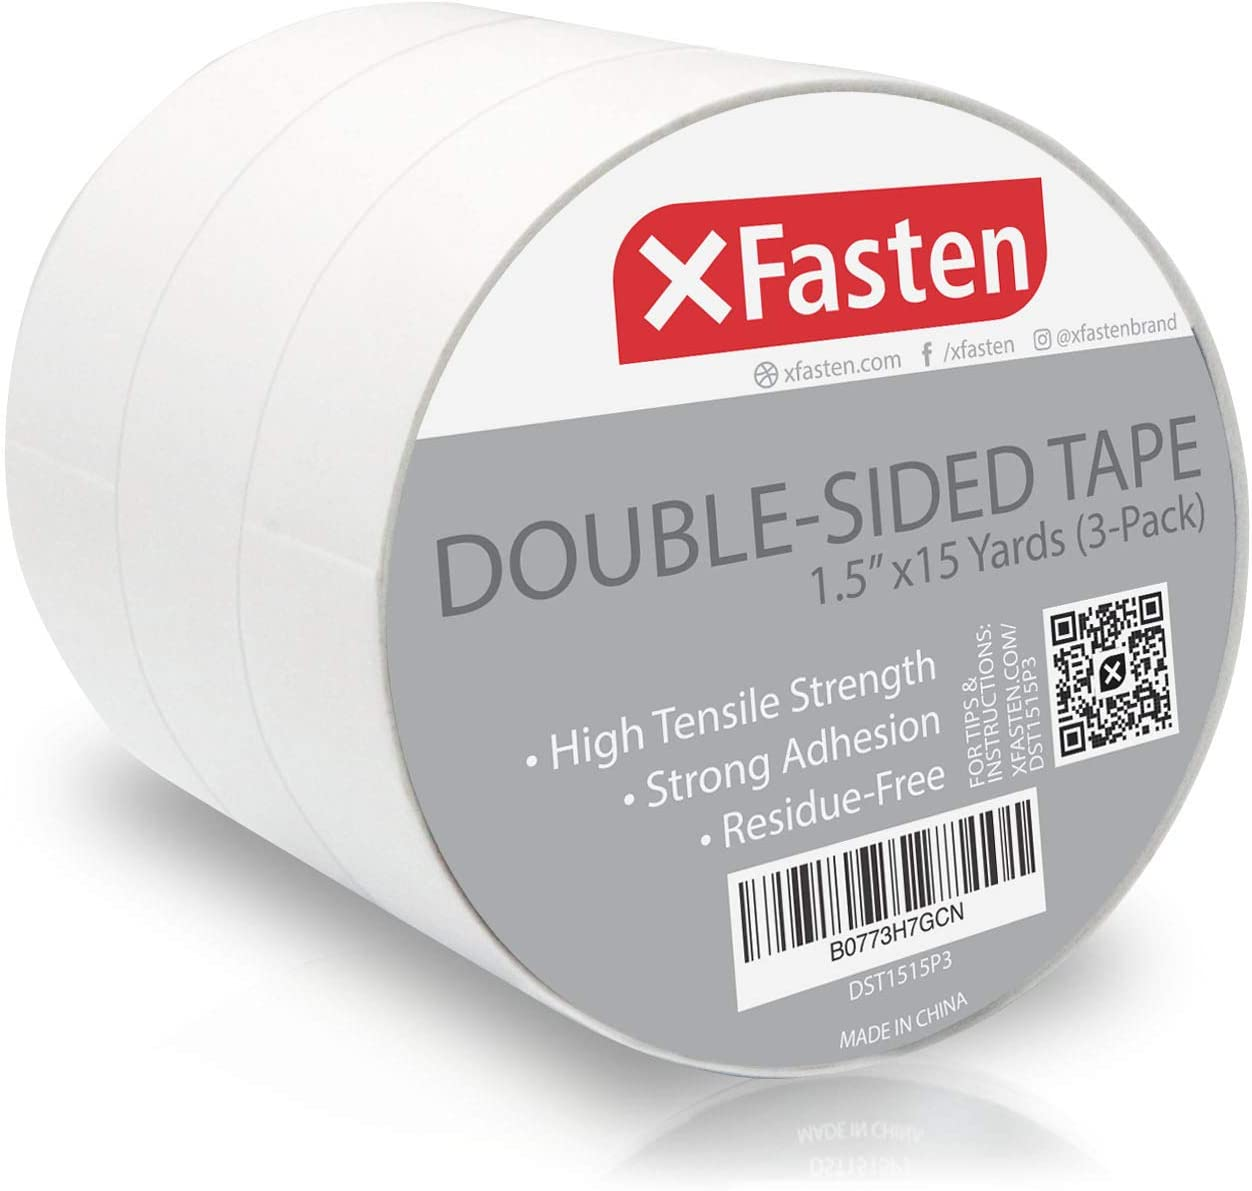 XFasten Double Sided Tape Removable, 1.5-Inch by 15-Yards (Pack of 3)